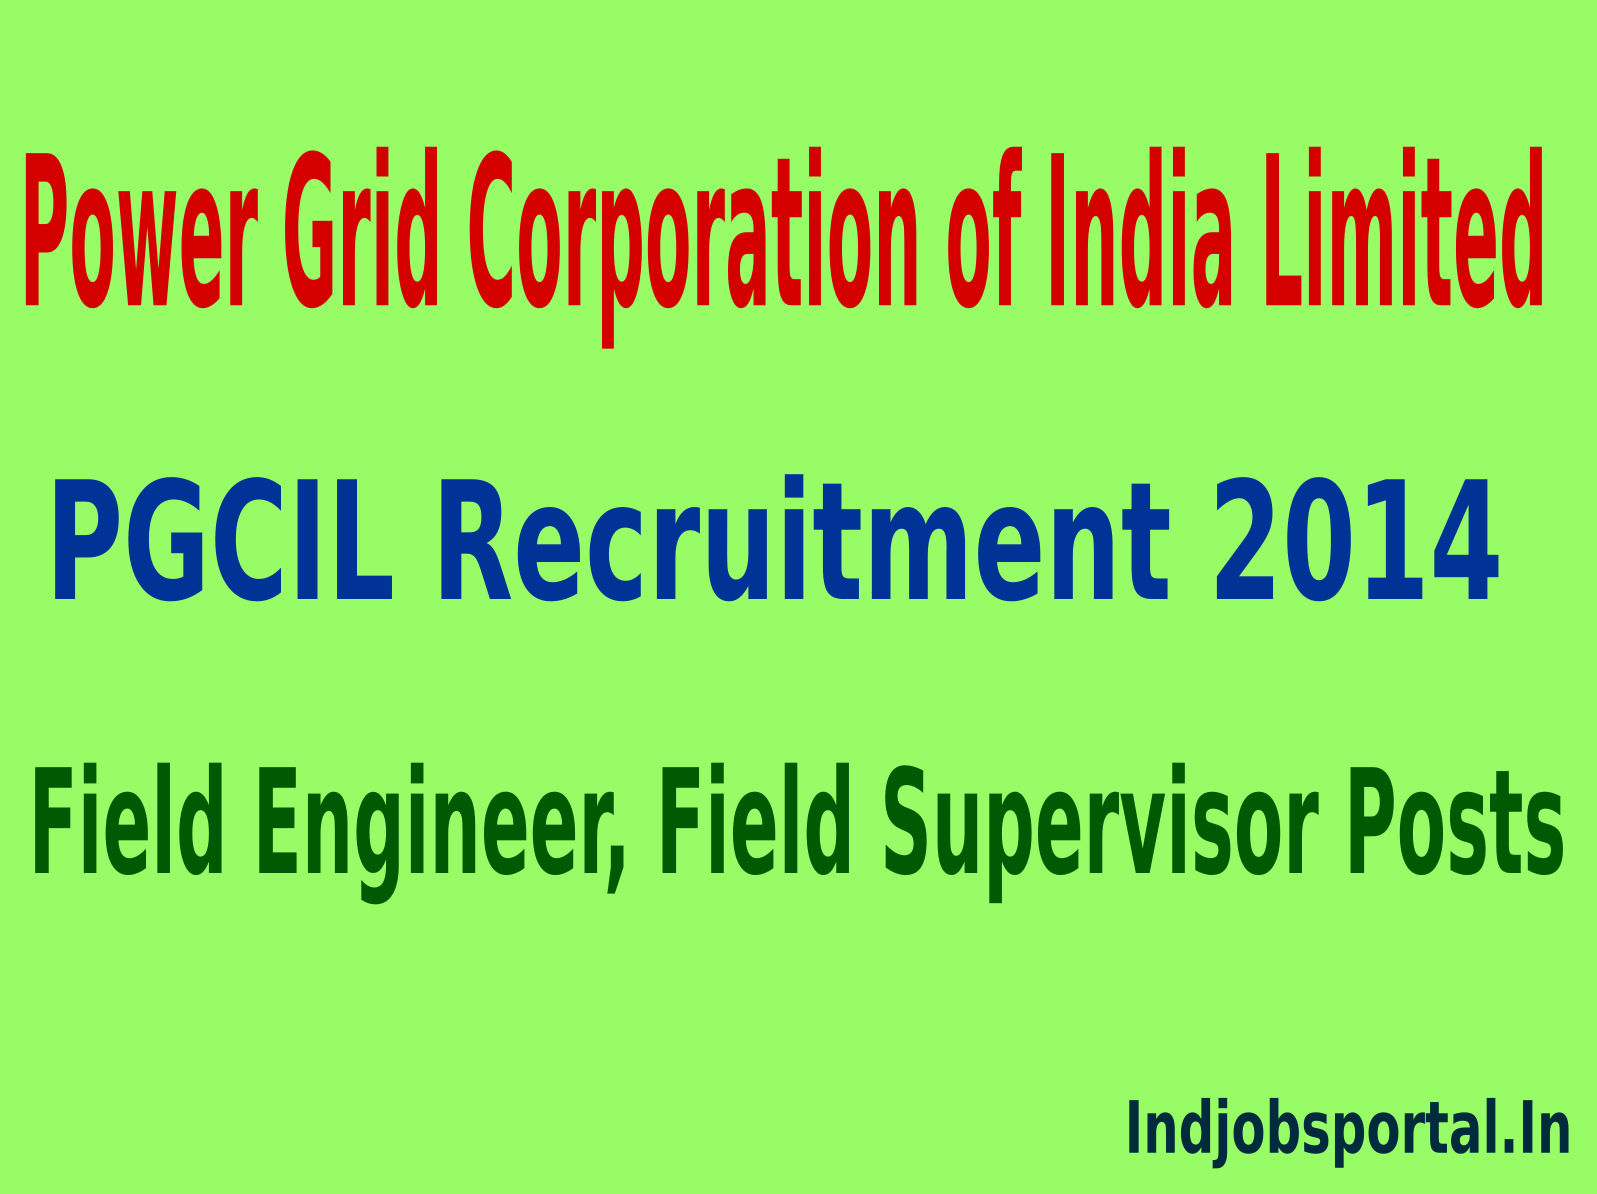 PGCIL Recruitment 2014 For 289 Field Engineer, Field Supervisor Posts